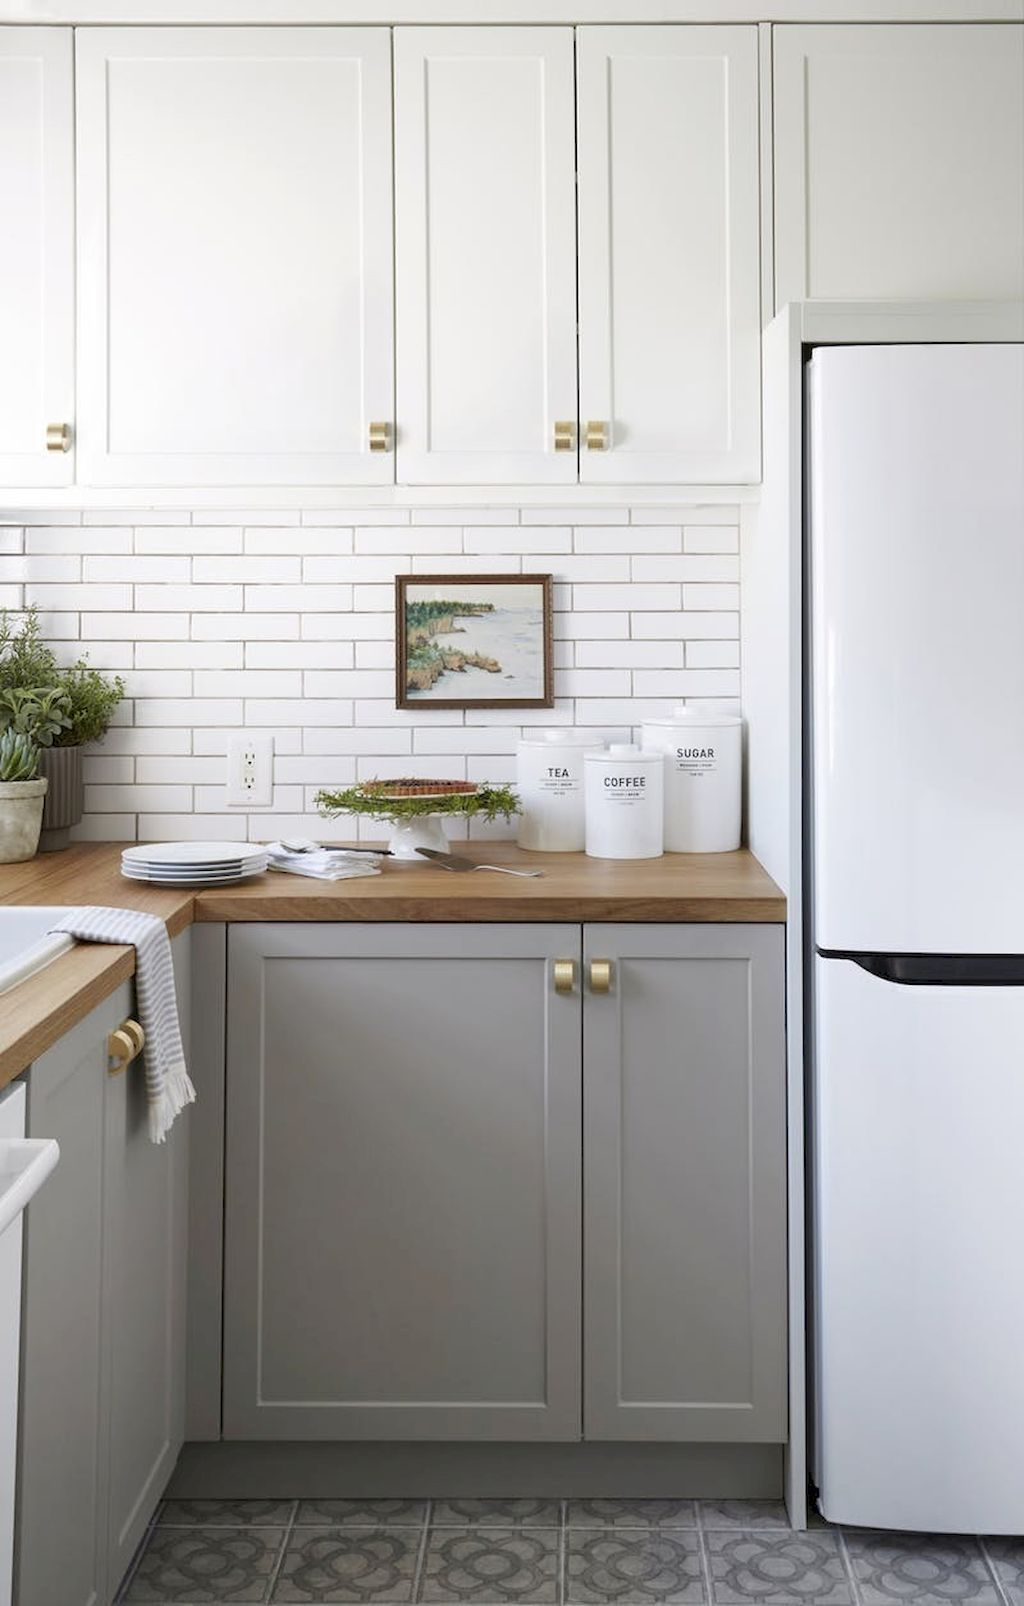 Easy apartment kitchen decorating ideas in my dream home